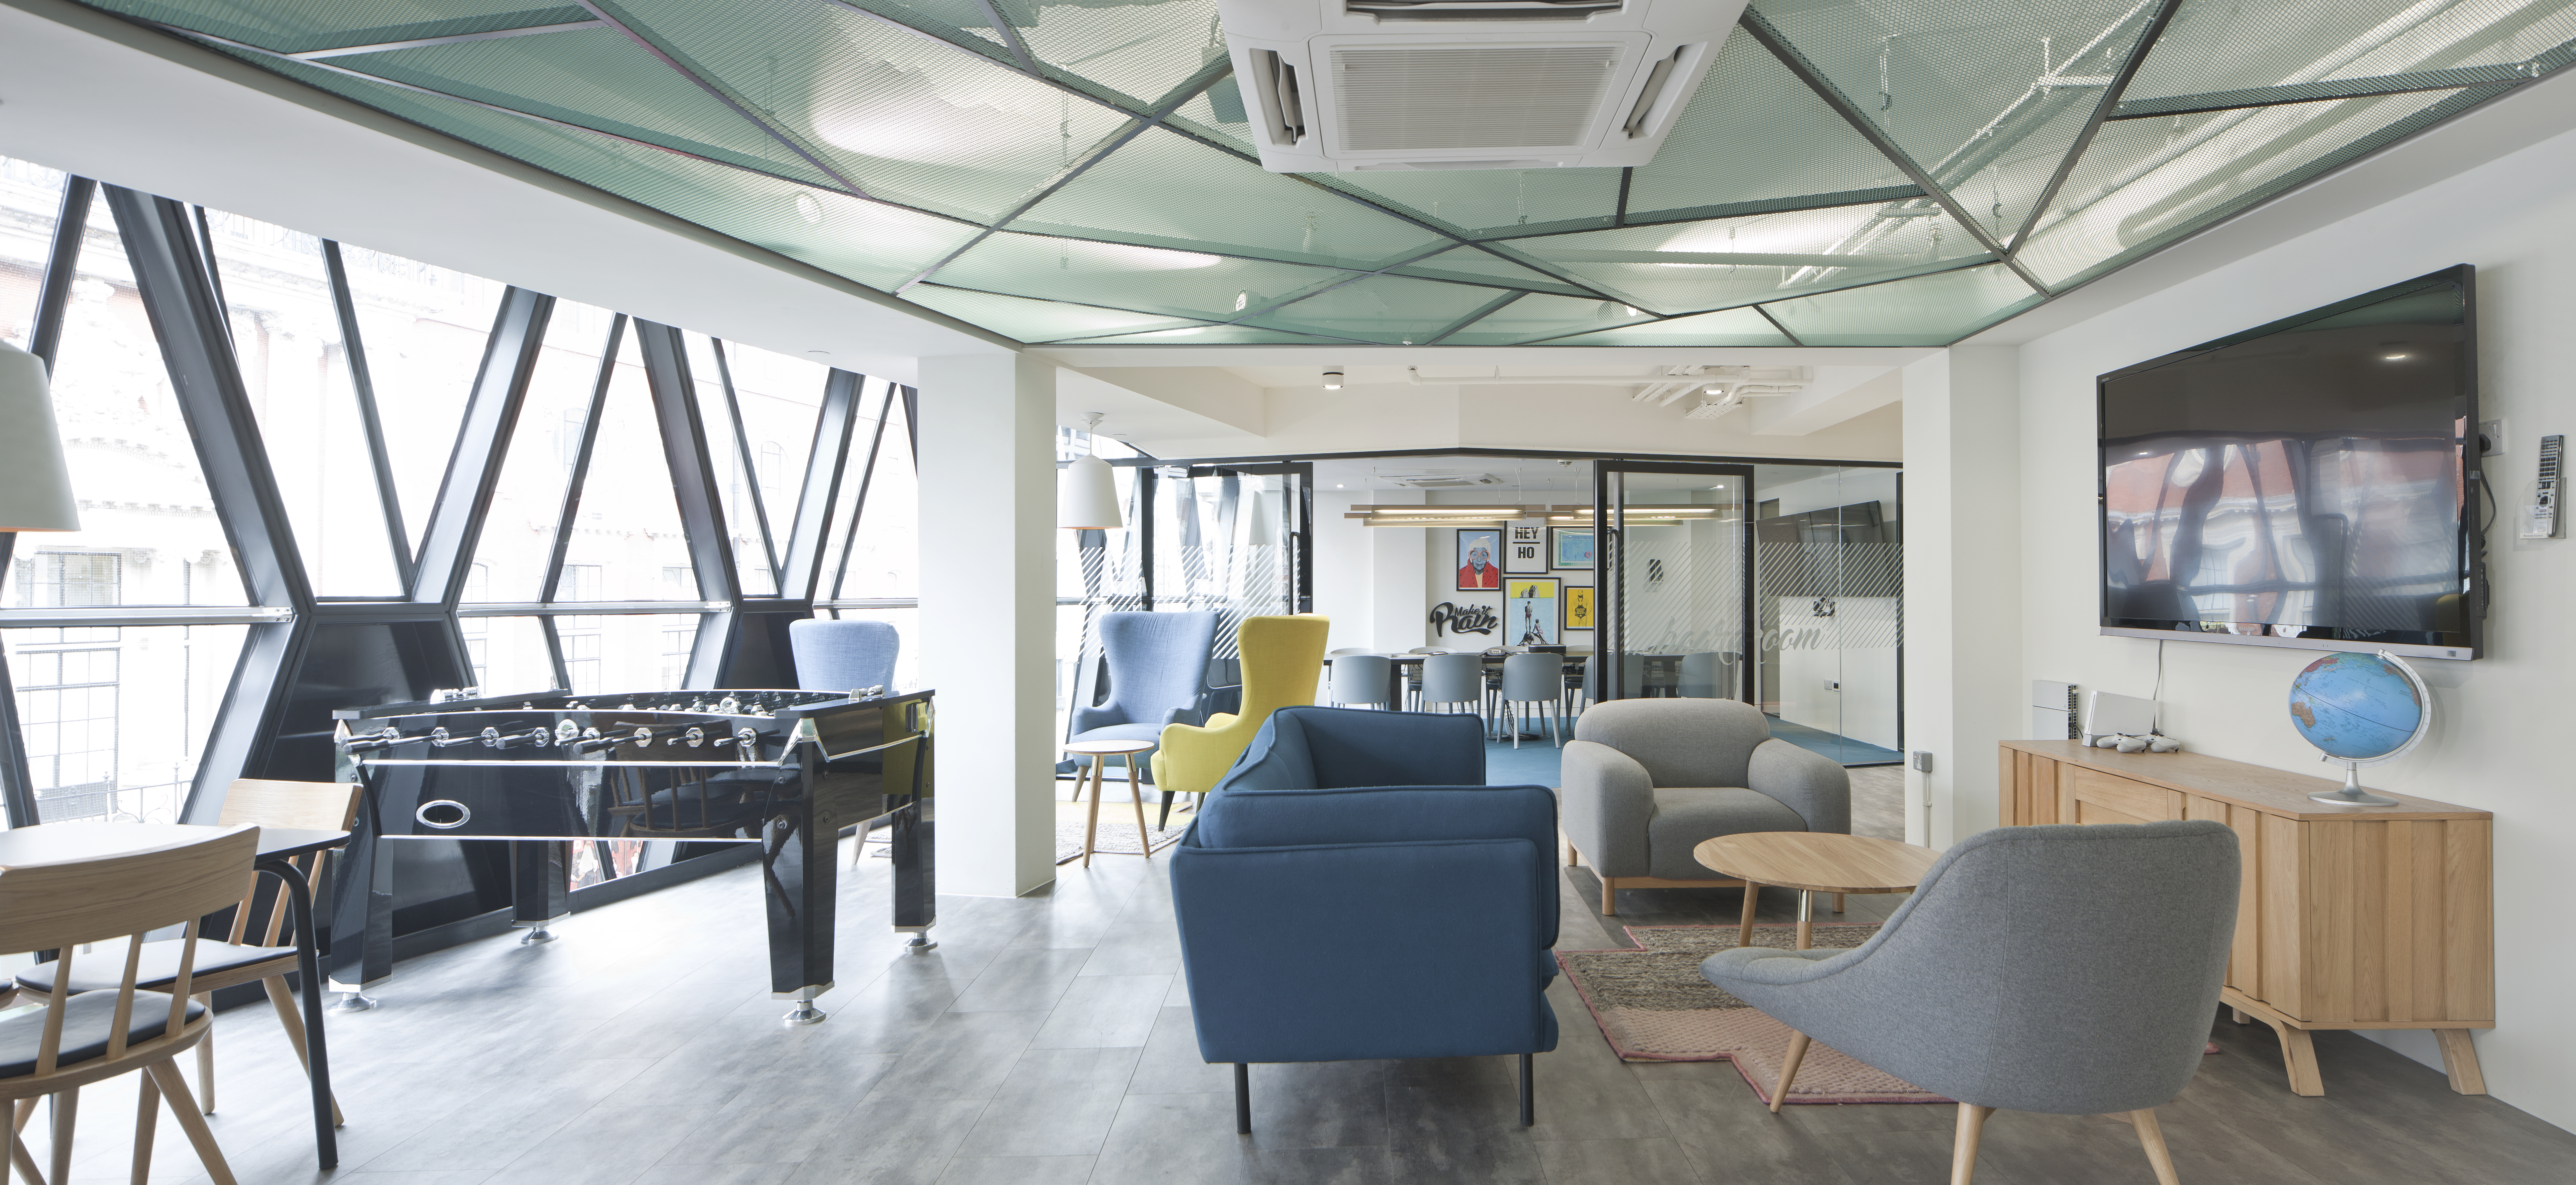 Work - 6 Ramillies Street, W1 - Soho (Shared and Private Offices)